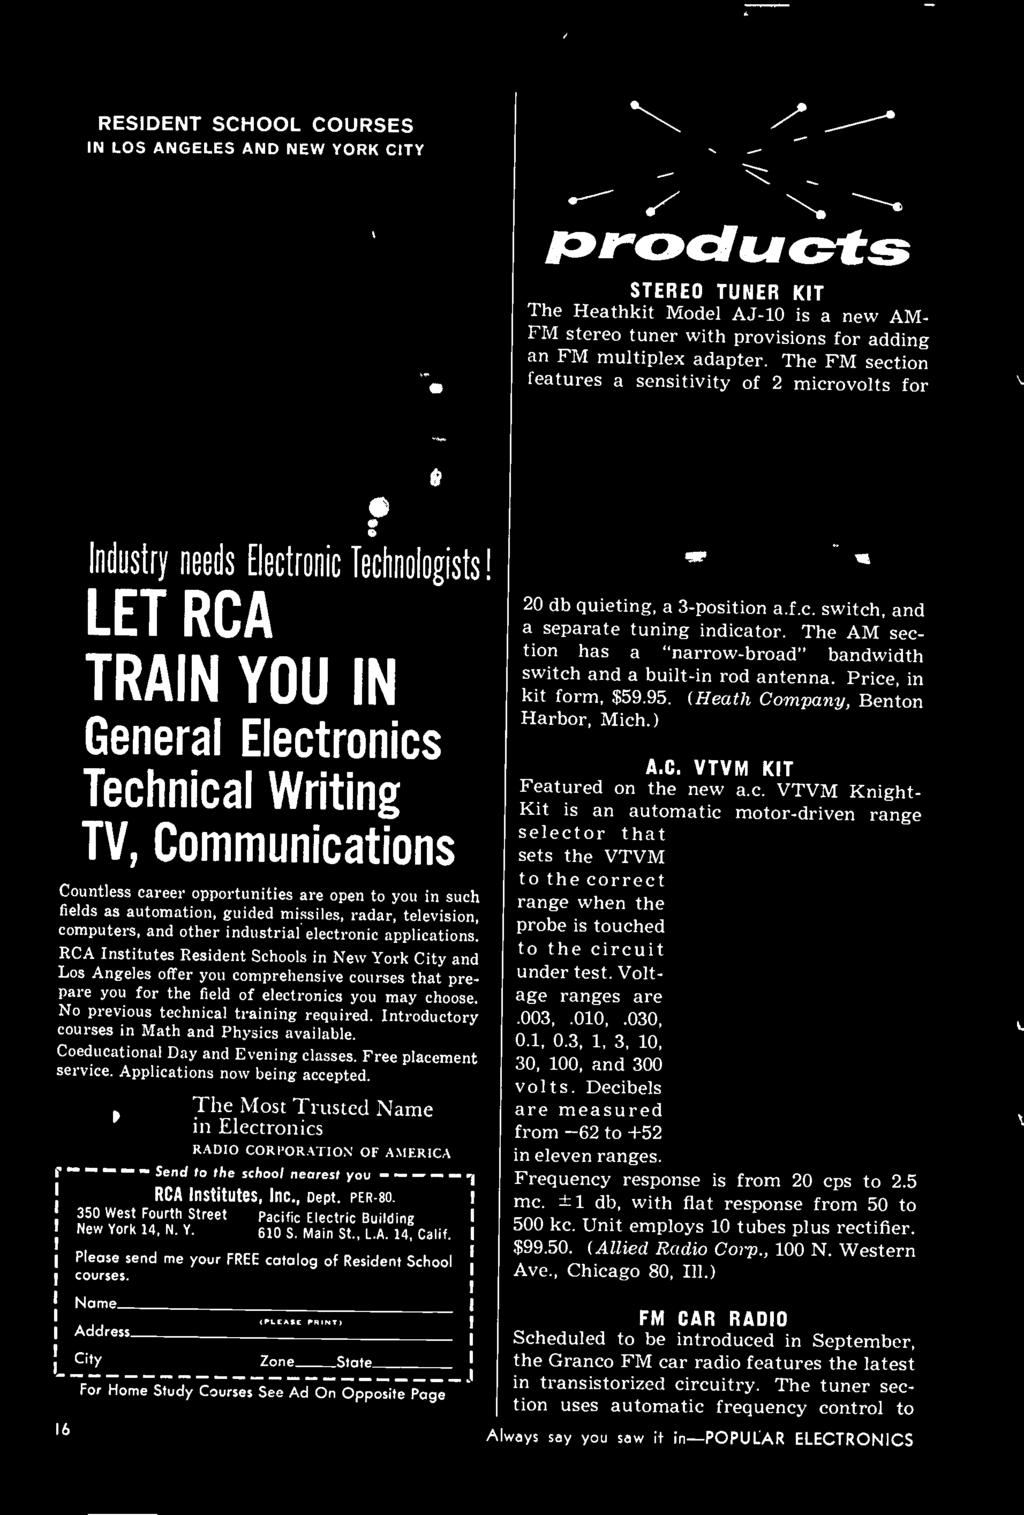 The Most Trusted Name In Electronics RADIO CORPORATION OF AMERICA